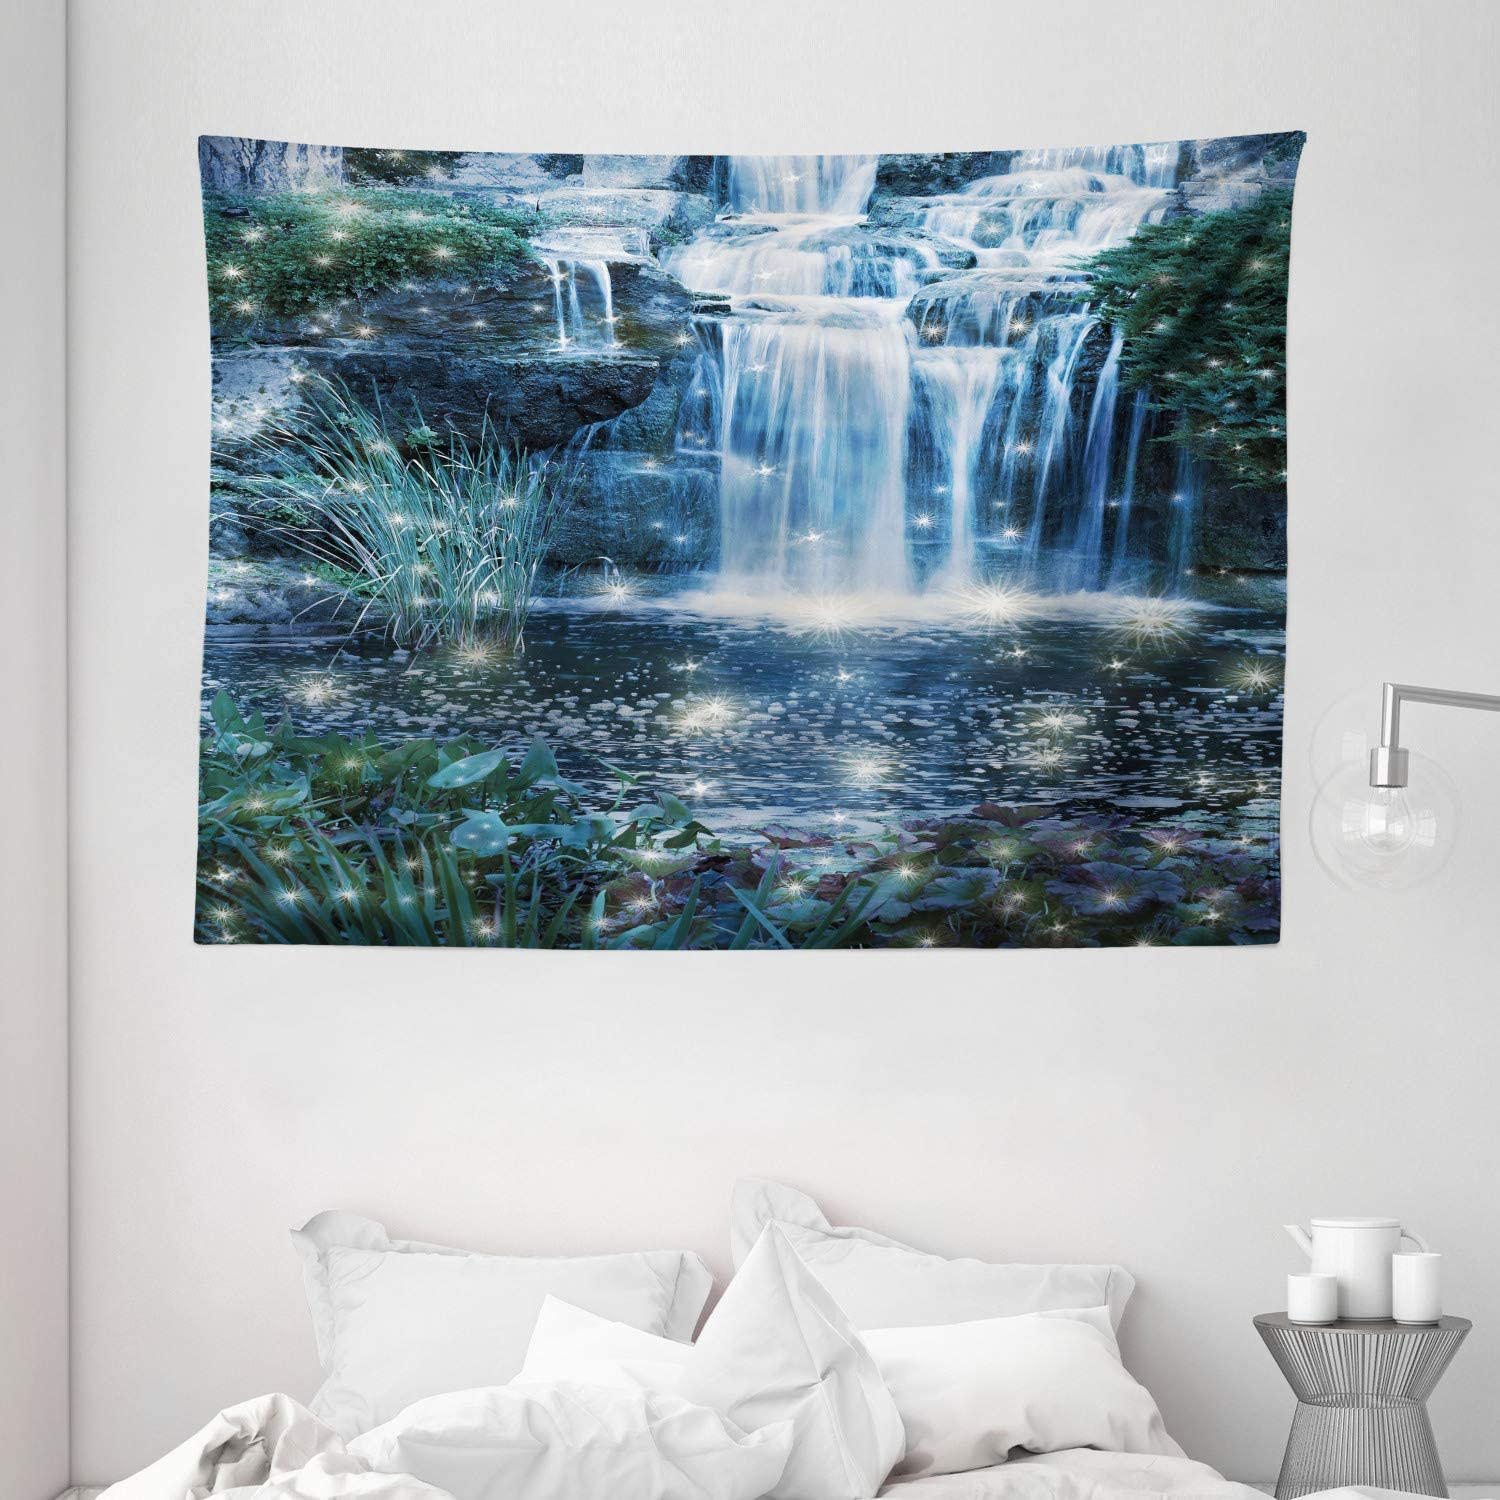 Amazon Com Ambesonne Magic Tapestry Fairy And Cascade At The Night On The Water Fresh Landscape Image Print Wide Wall Hanging For Bedroom Living Room Dorm 80 X 60 Grey Green Home